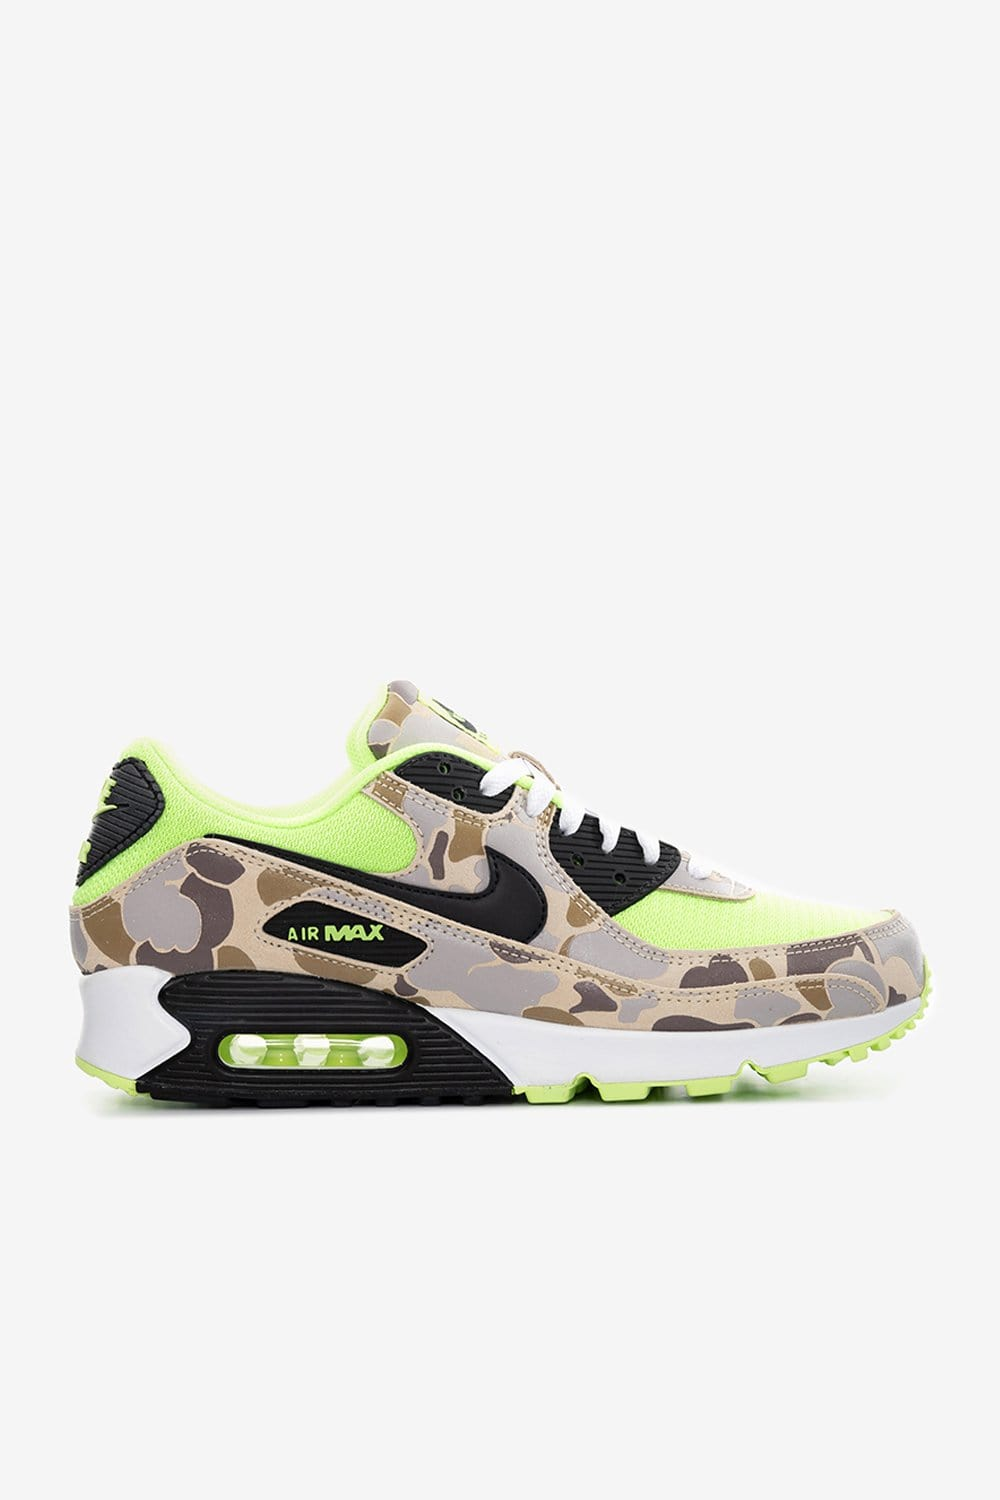 Nike Footwear Air Max 90 SP